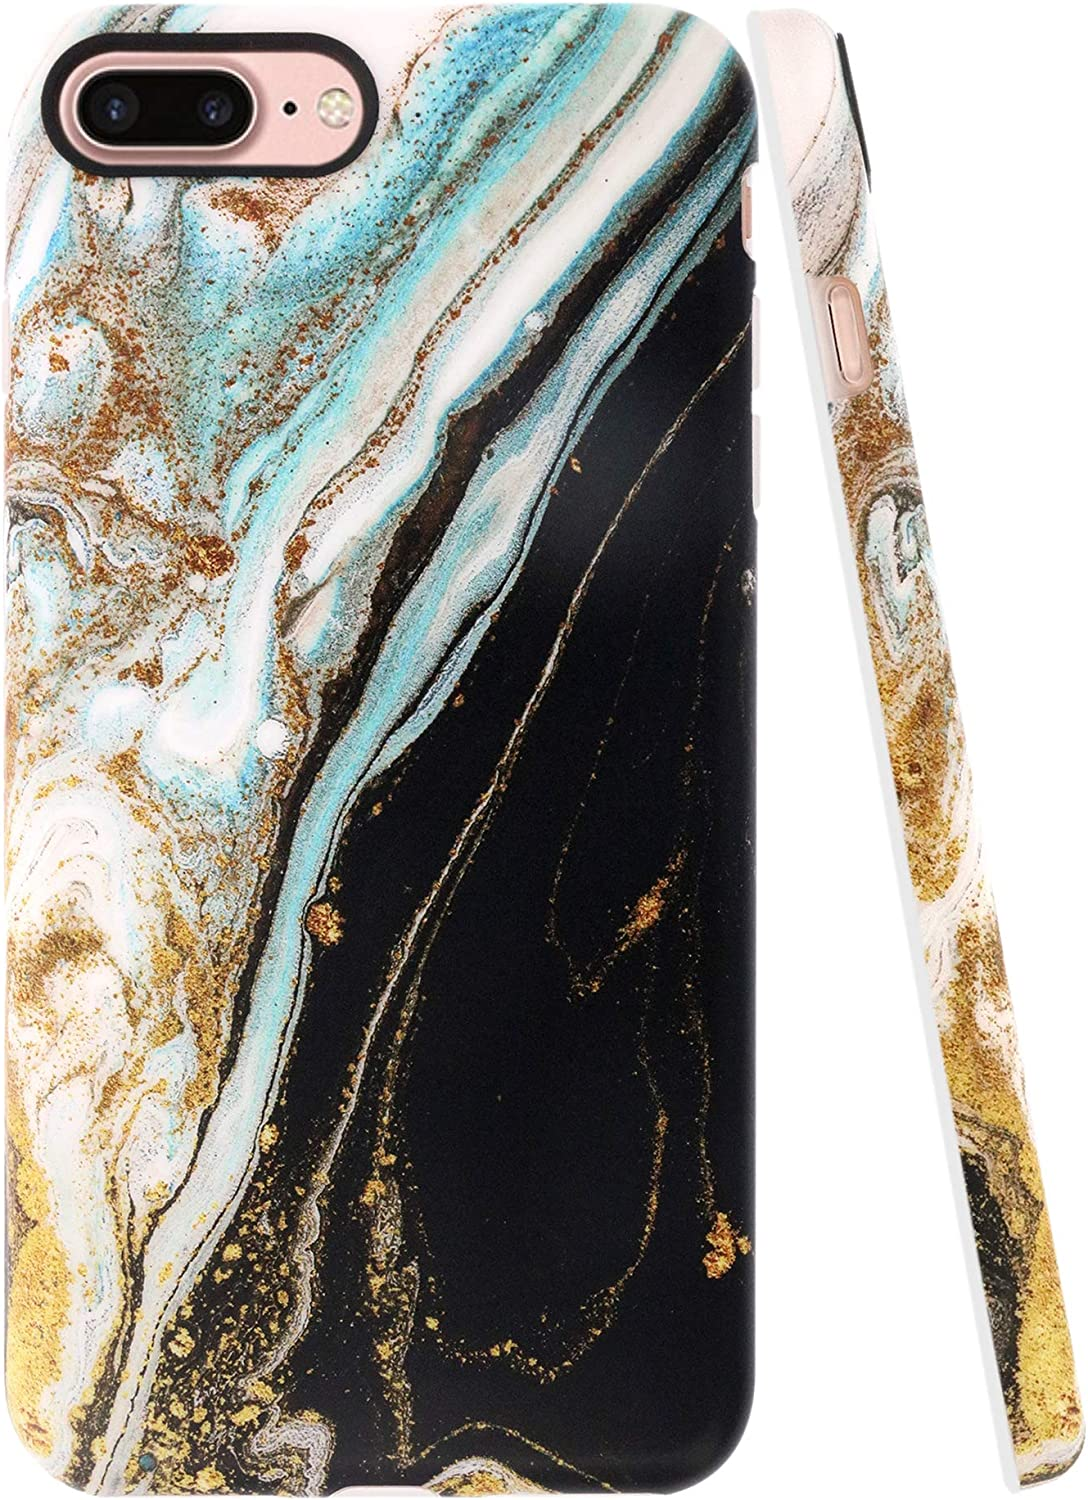 A-Focus Case for iPhone 8 Plus Case, iPhone 7 Plus Case Marble, Frosted Black White Marble Series IMD Design Flexible Slim TPU Rubber Case for iPhone 7 Plus 8 Plus 5.5 inch Matte Black Yellow